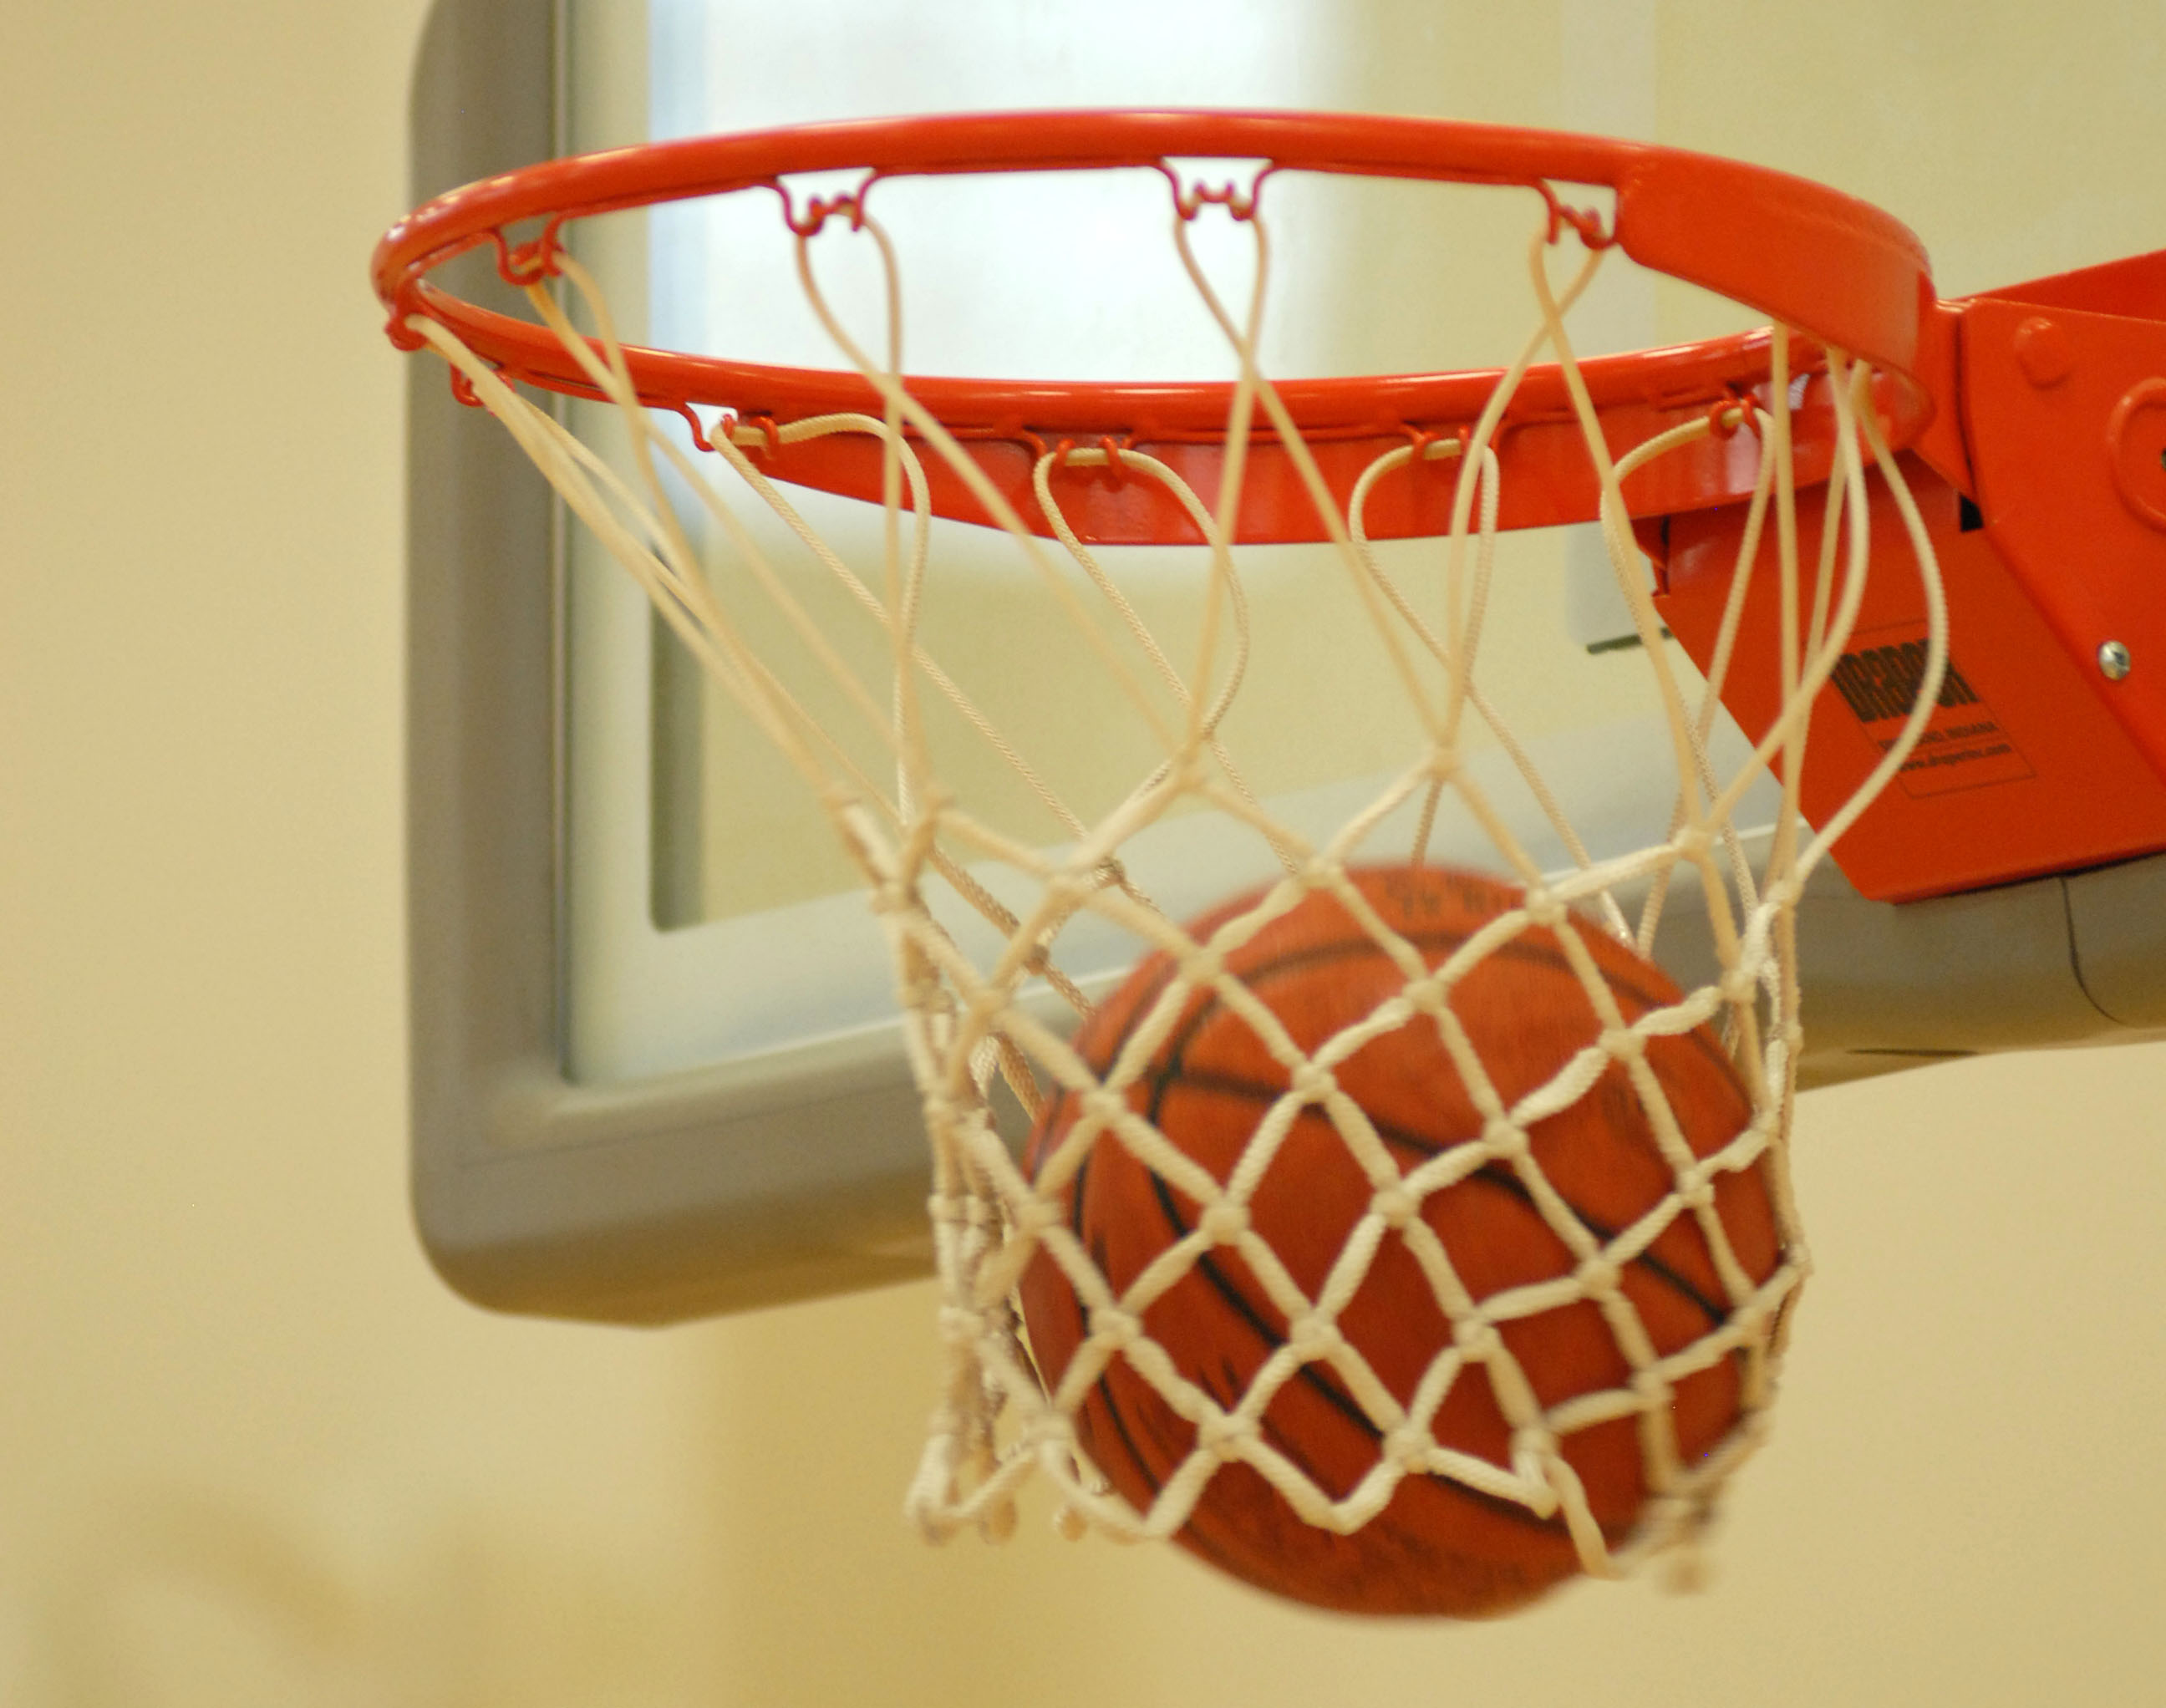 Image result for creative commons images of basketball